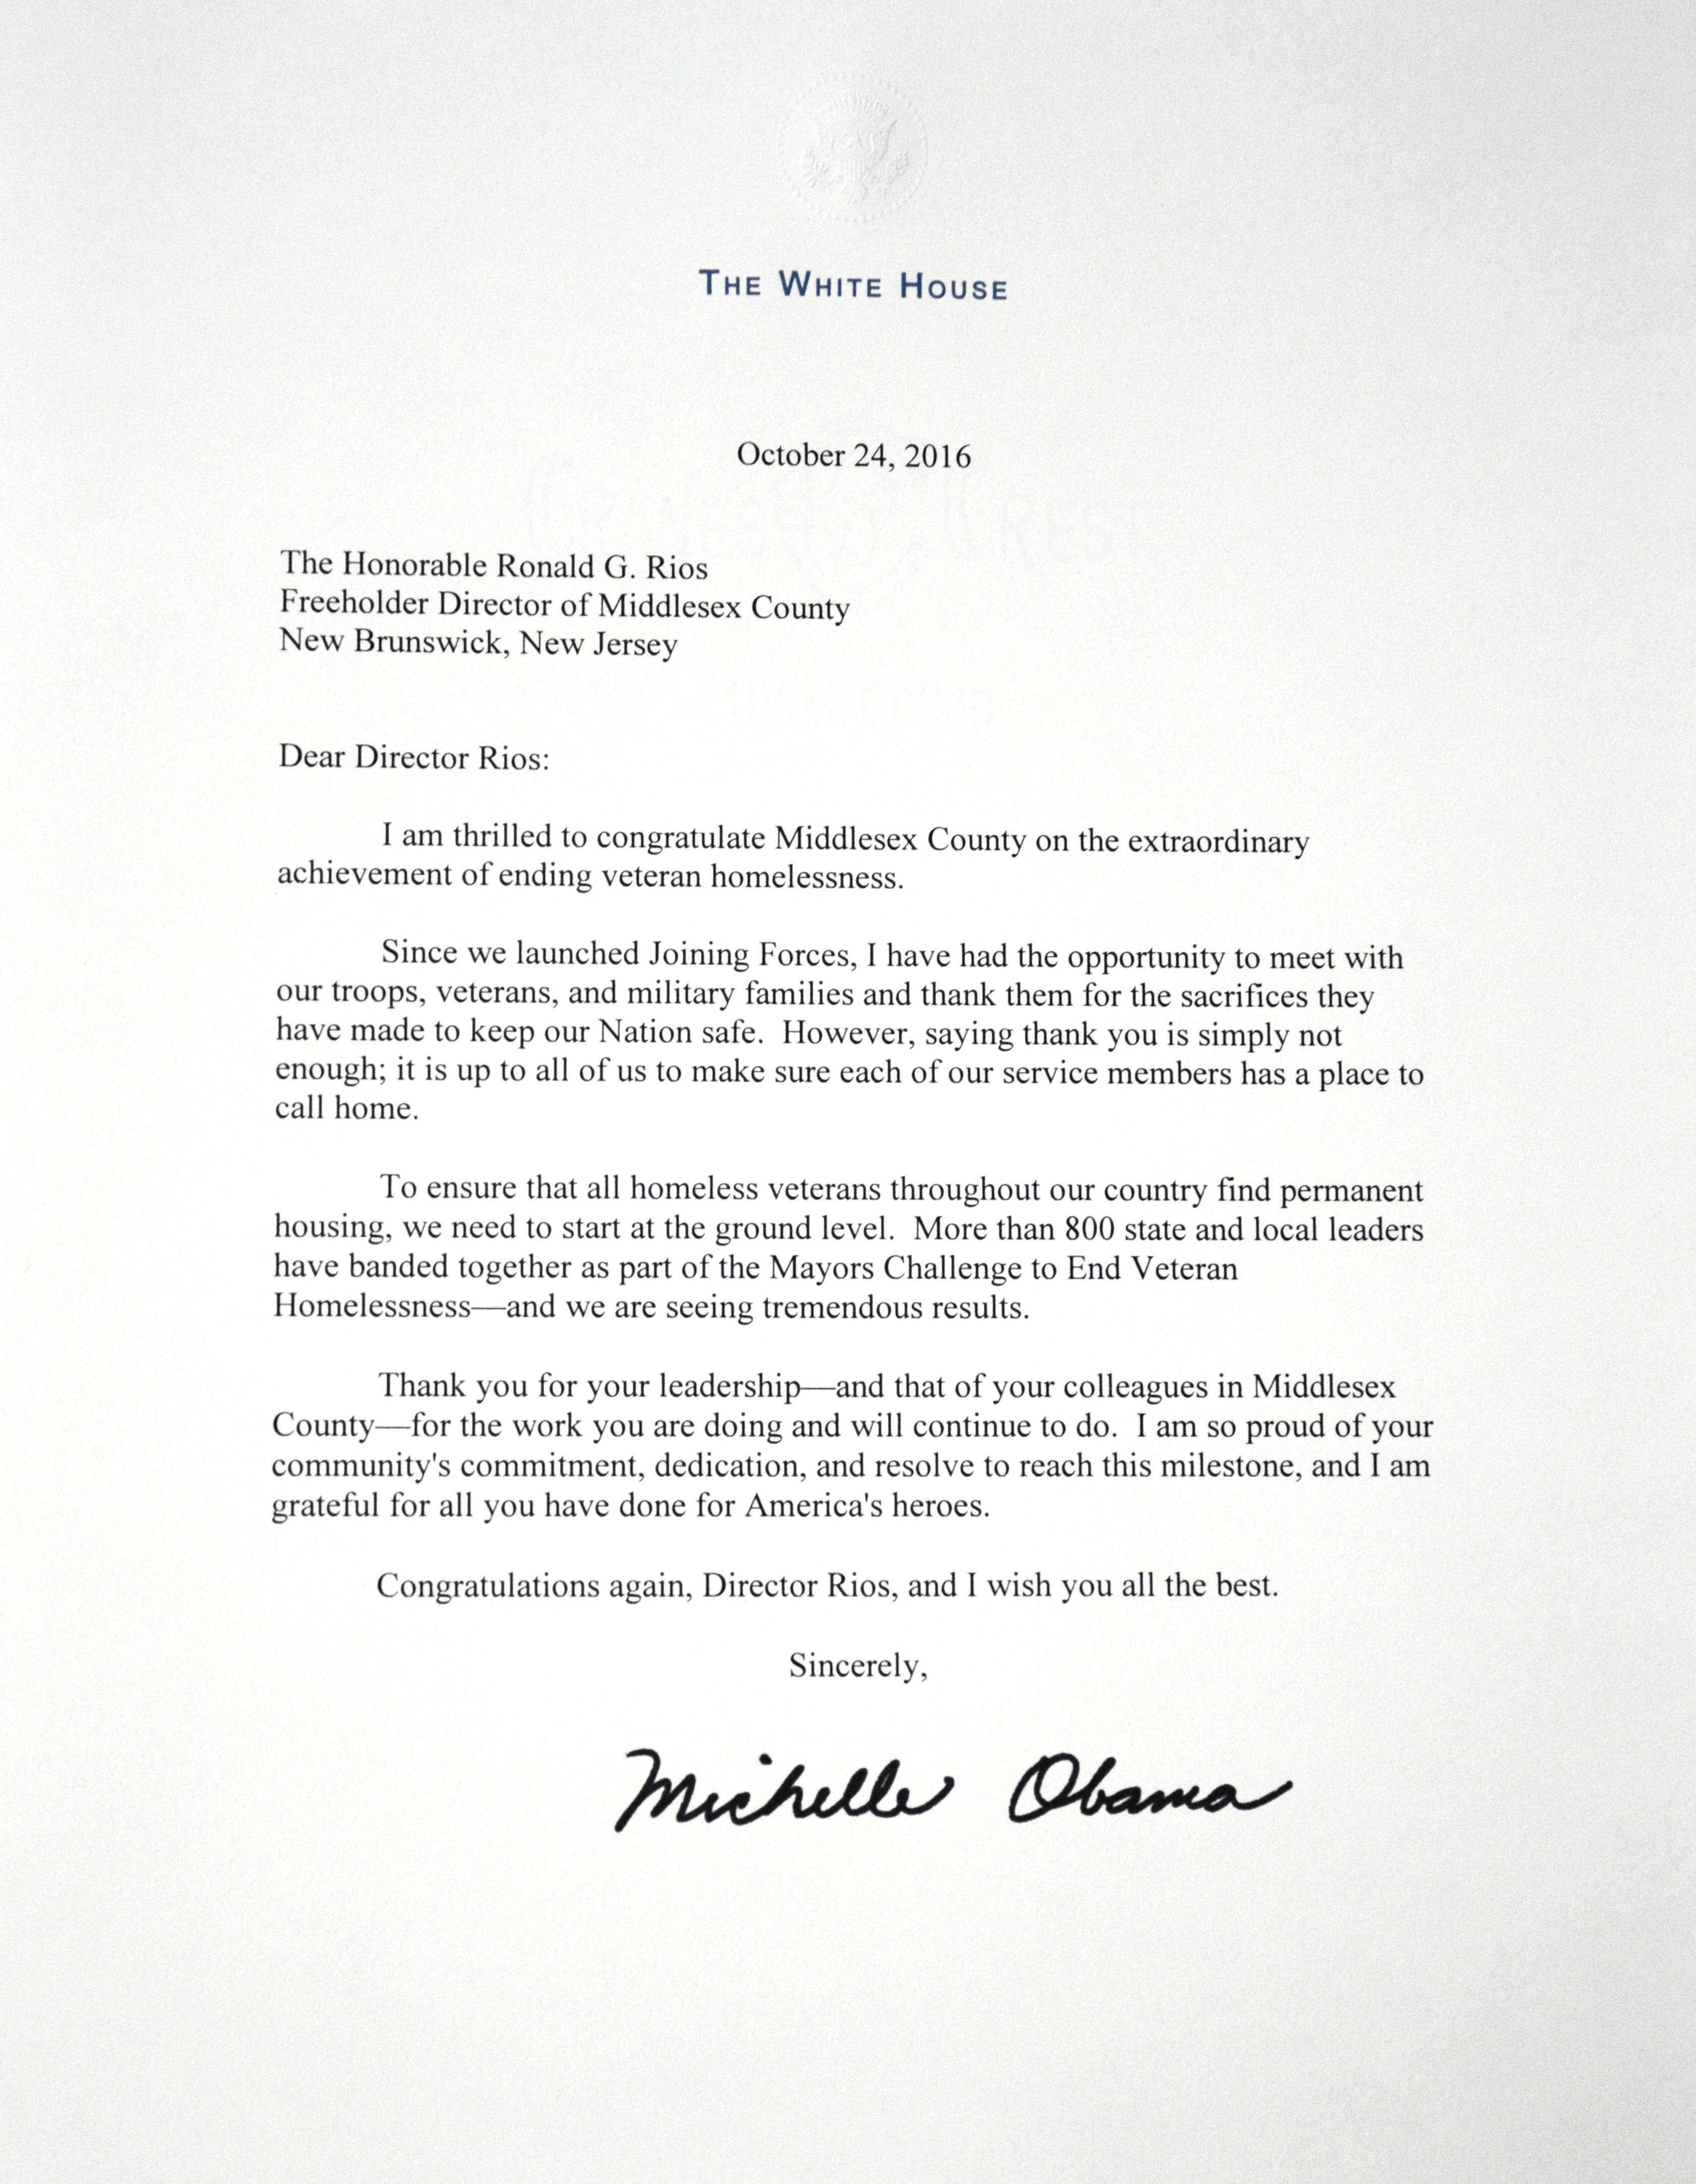 Michelle Obama Congratulates Middlesex County On Effectively Ending  Veteransu0027 Homelessness